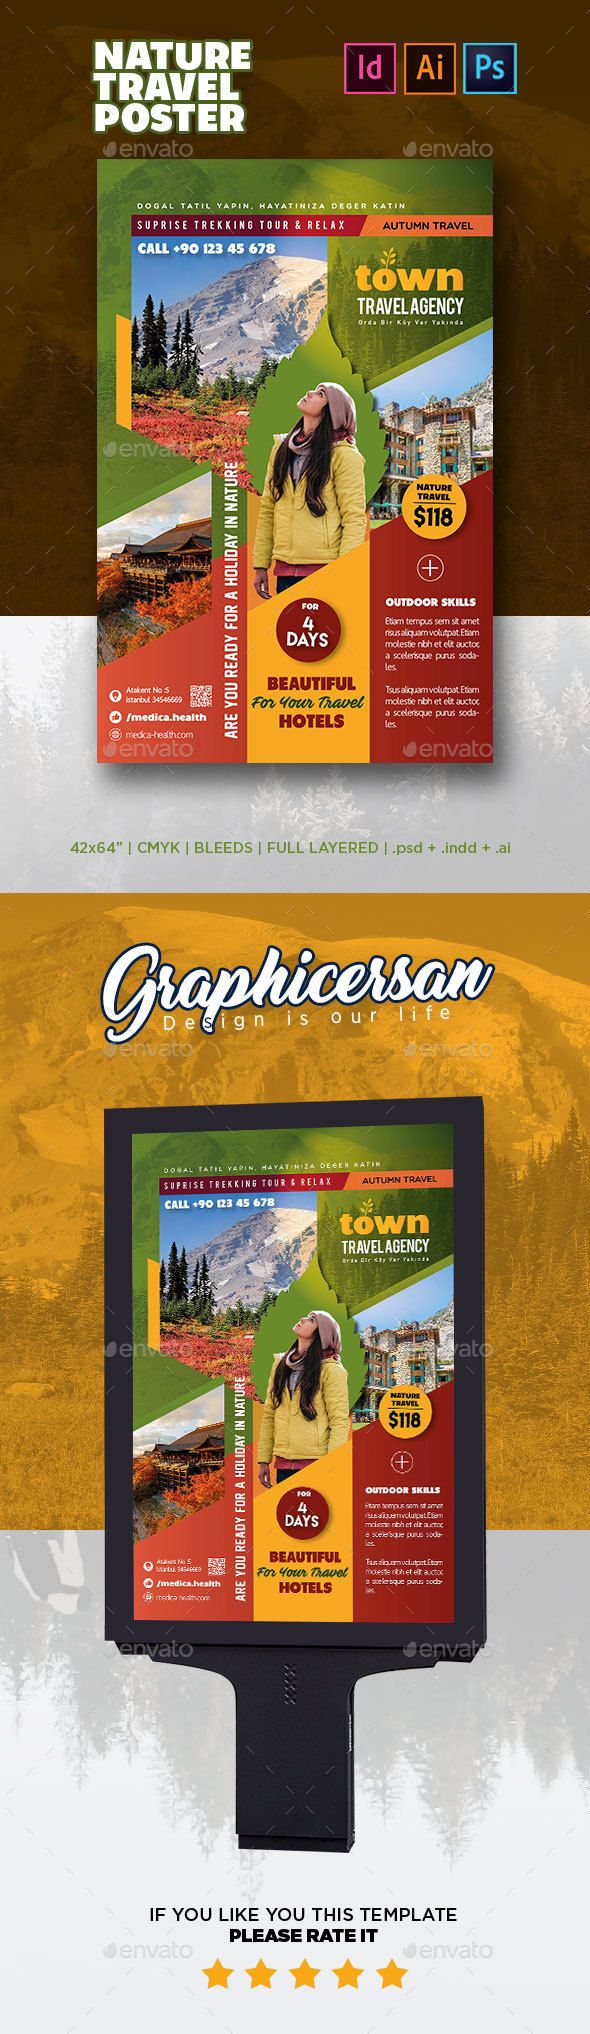 Nature Travel Poster Template PSD, InDesign INDD, AI Illustrator